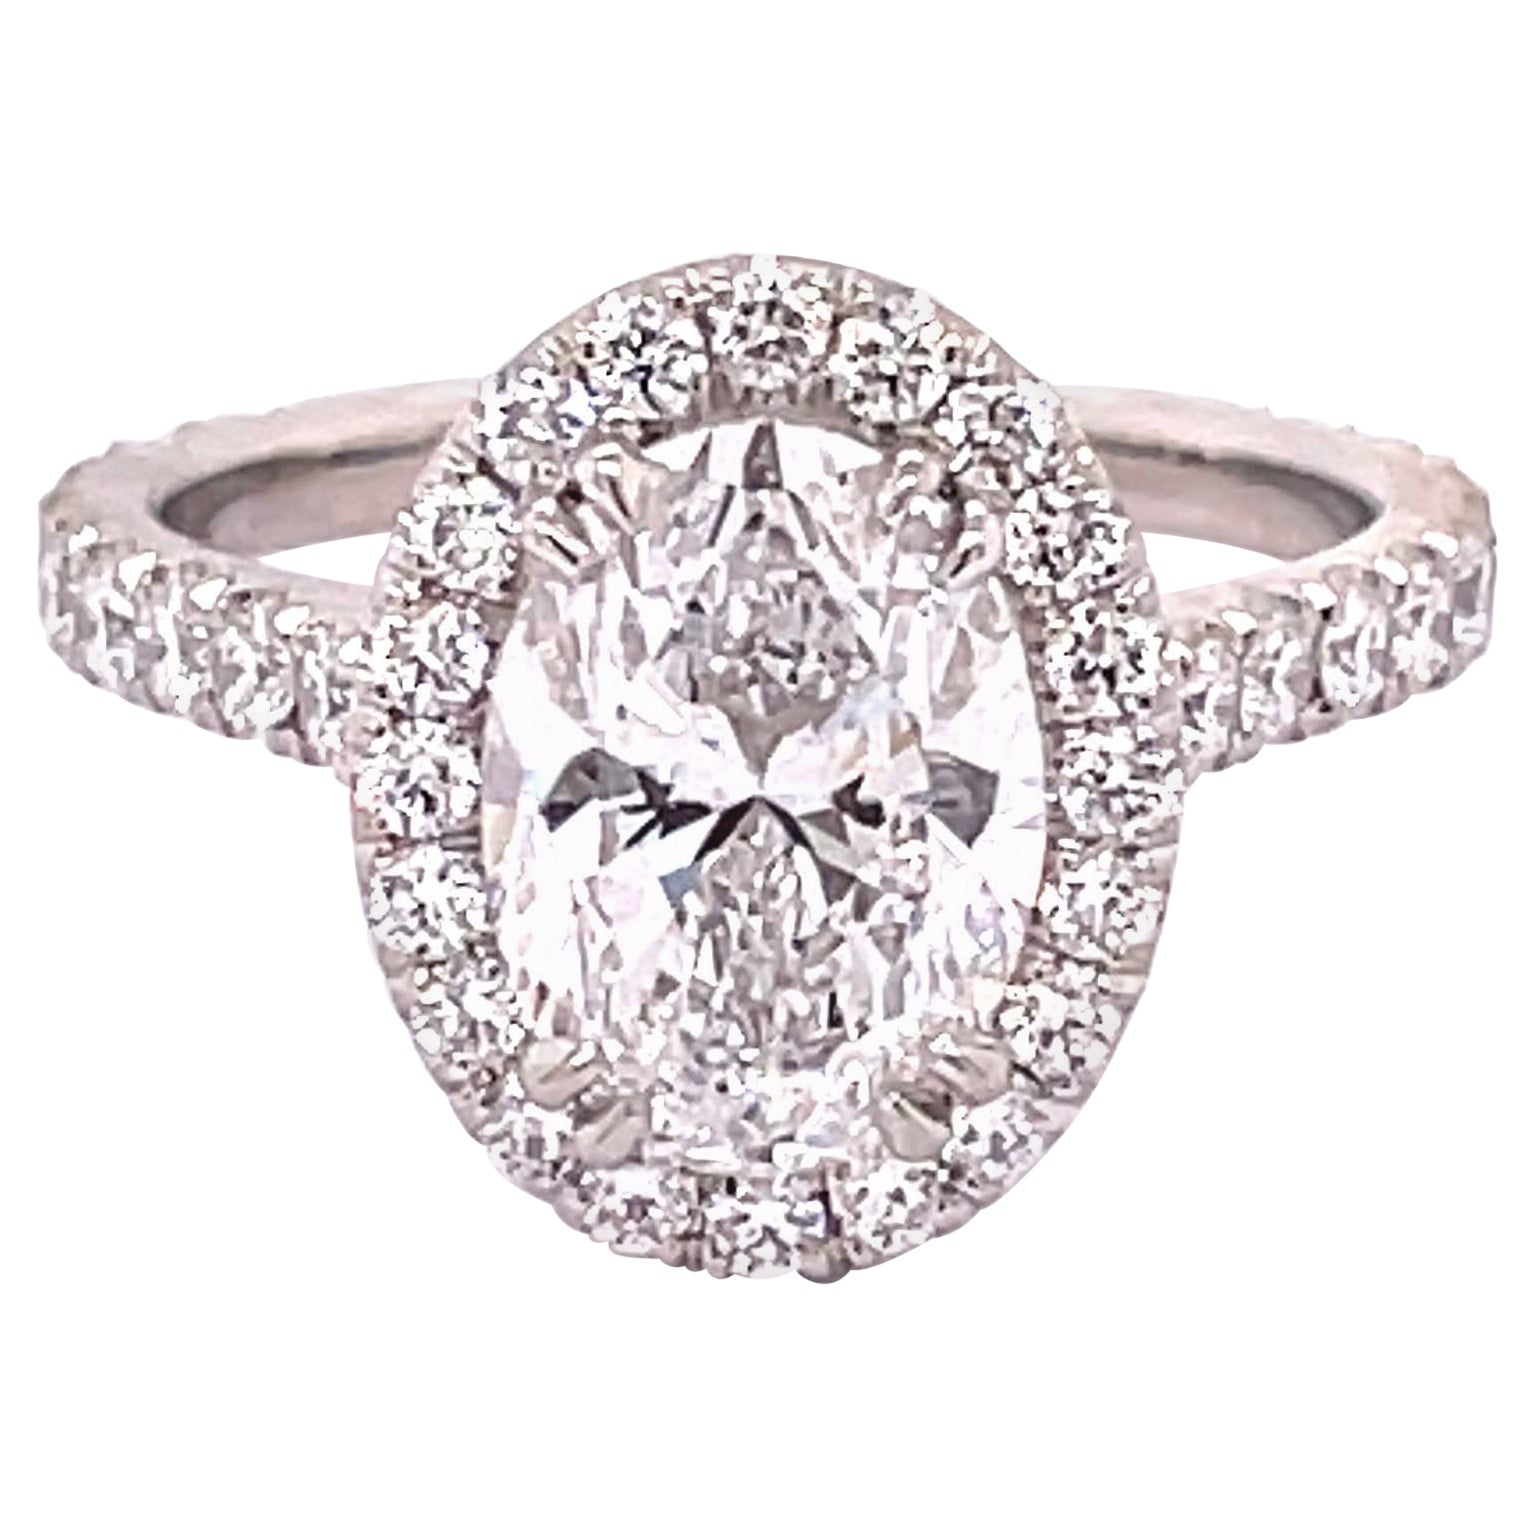 GIA Certified 2.20 Carat Oval Diamond Engagement Ring